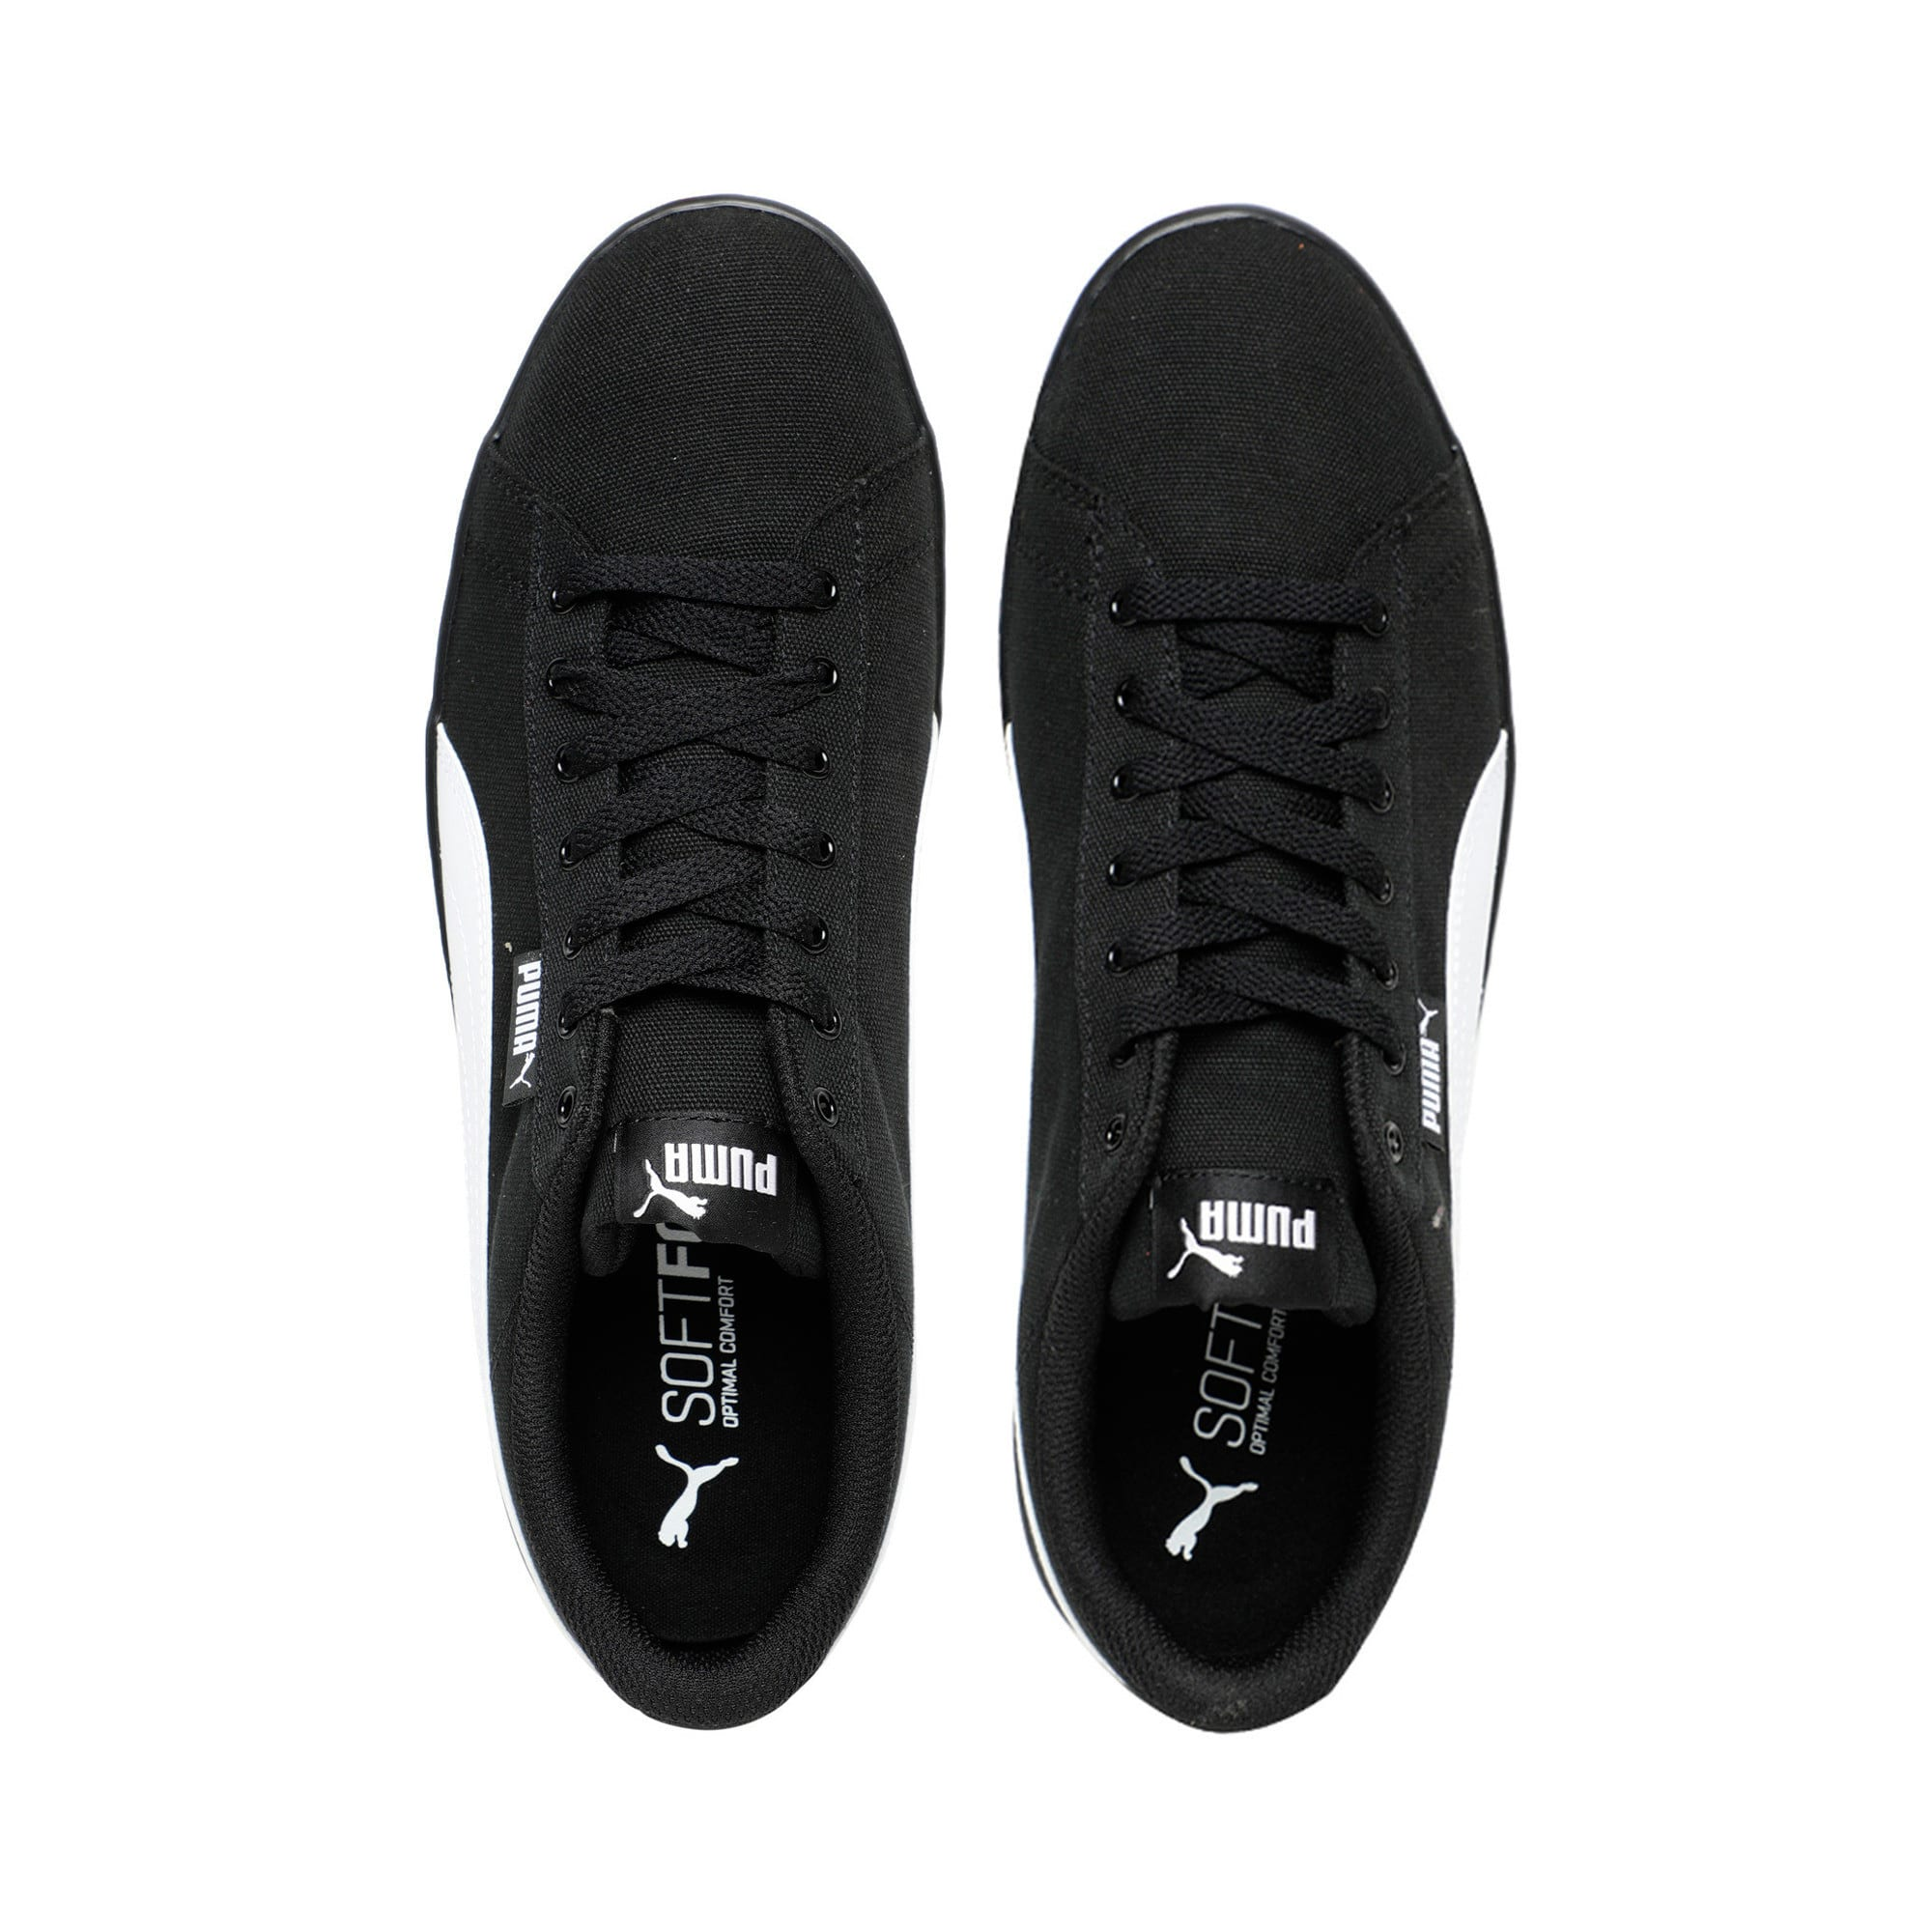 Thumbnail 6 of Urban Plus CV, Puma Black-Puma White, medium-IND